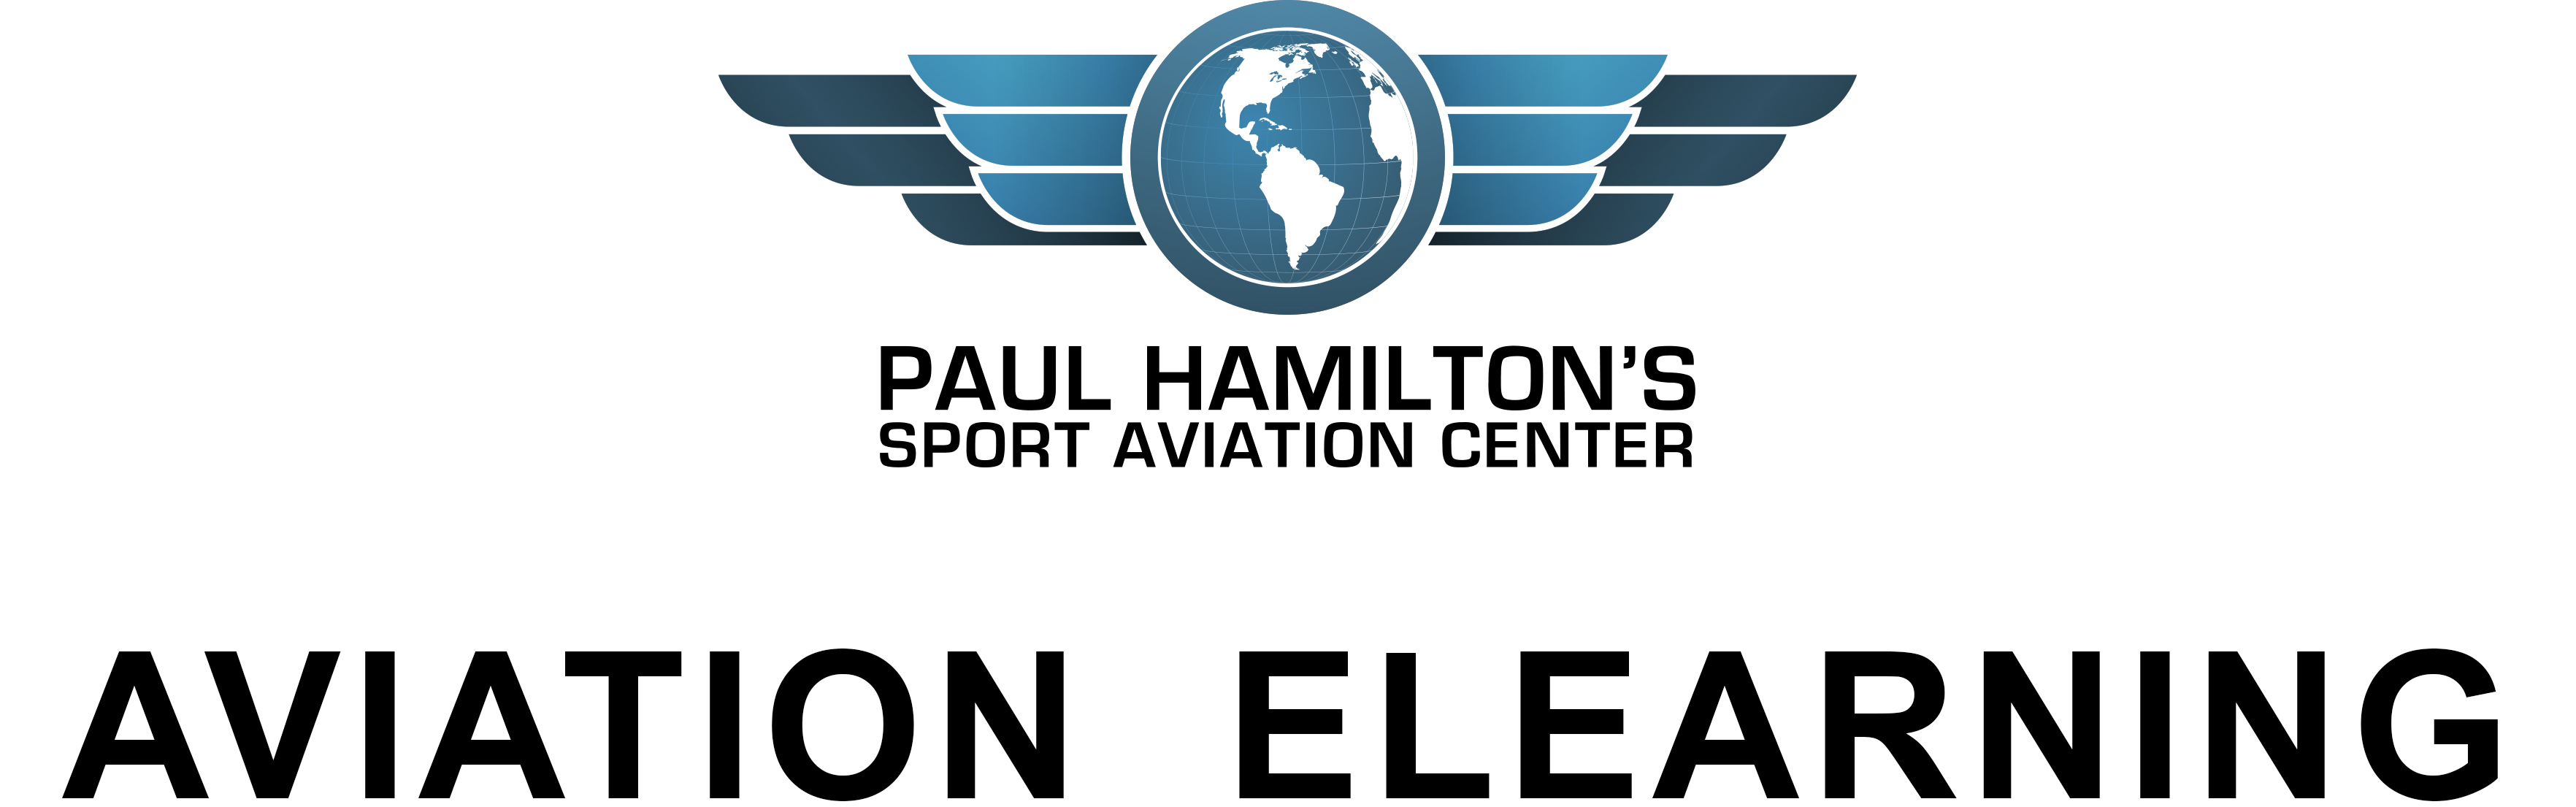 AVIATION ELEARNING | Paul Hamilton's Sport Aviation Center LLC